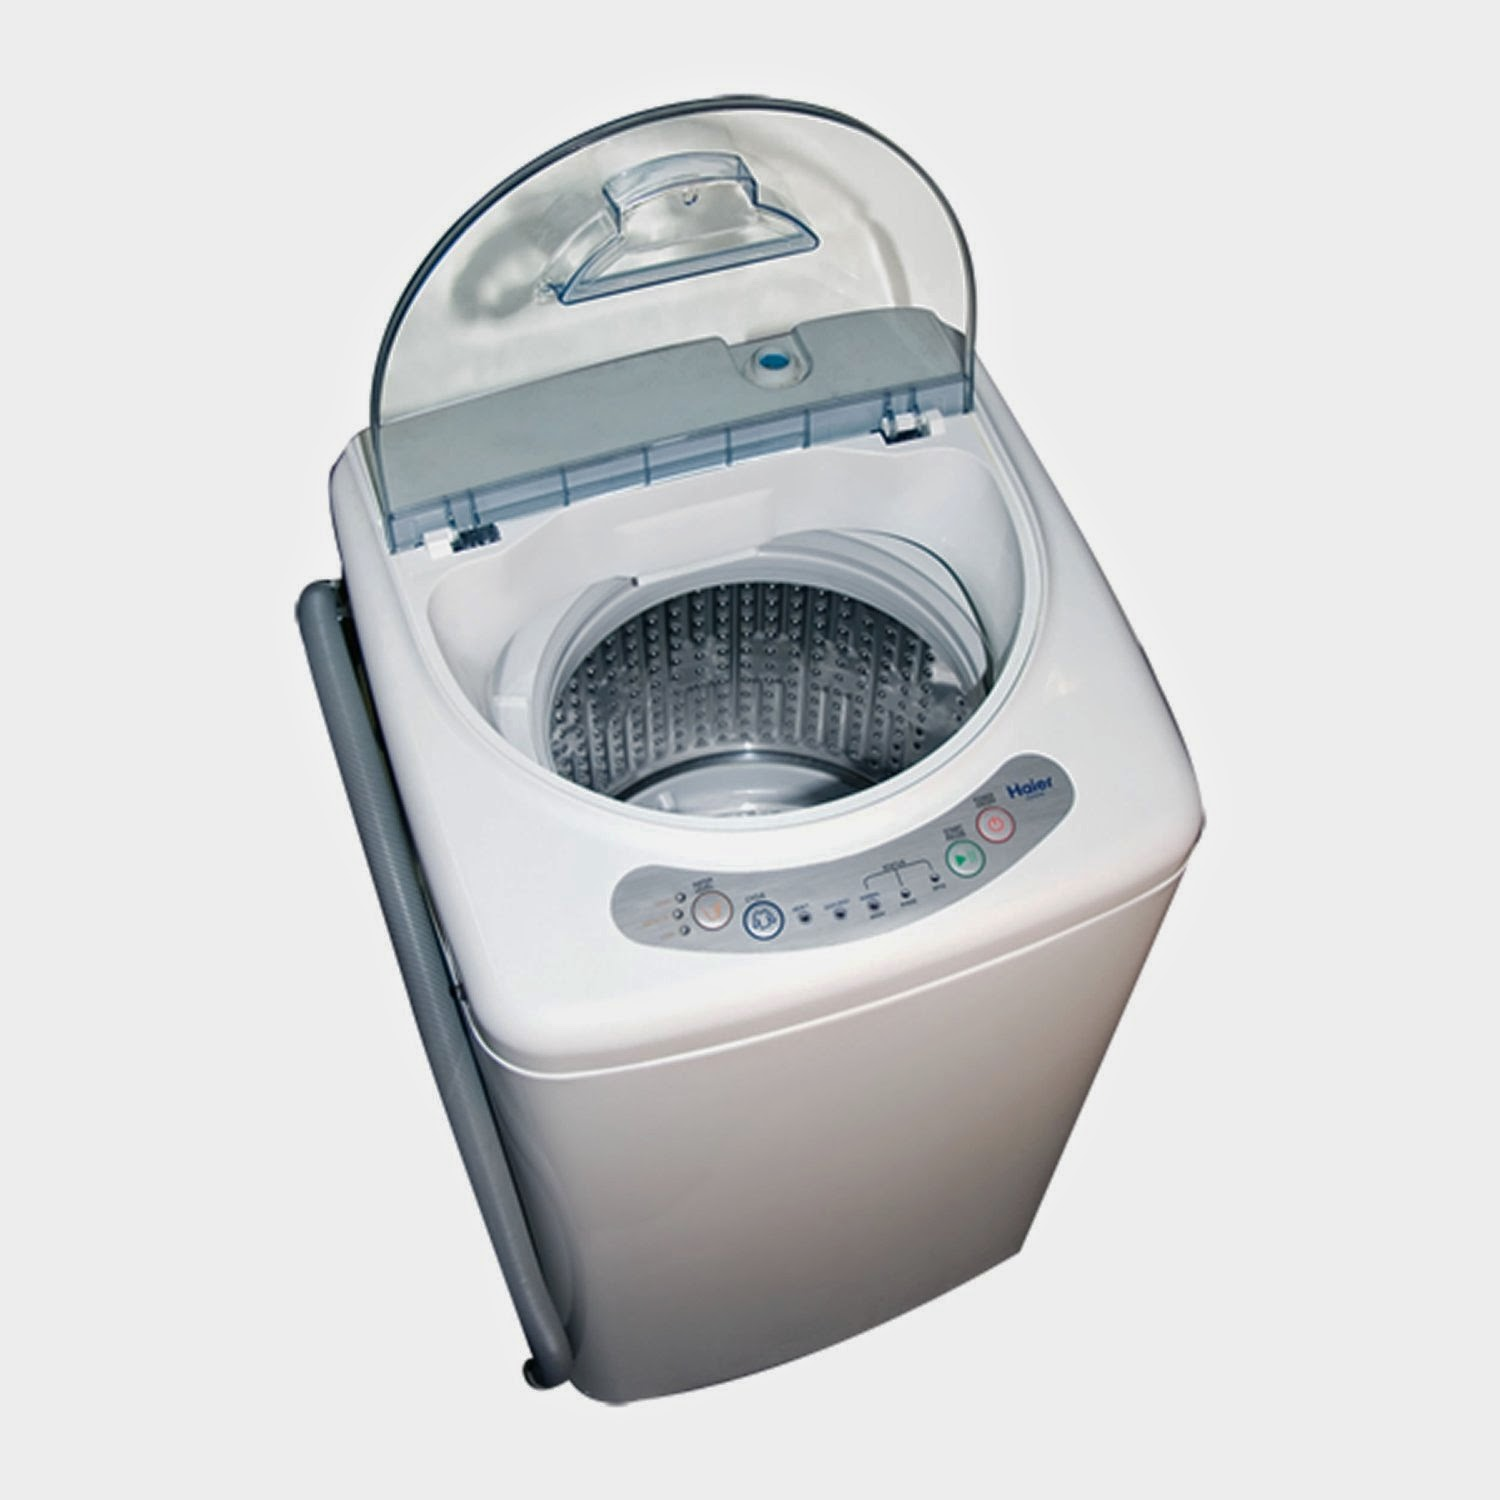 Where can I find good deals on washer and dryer combos?